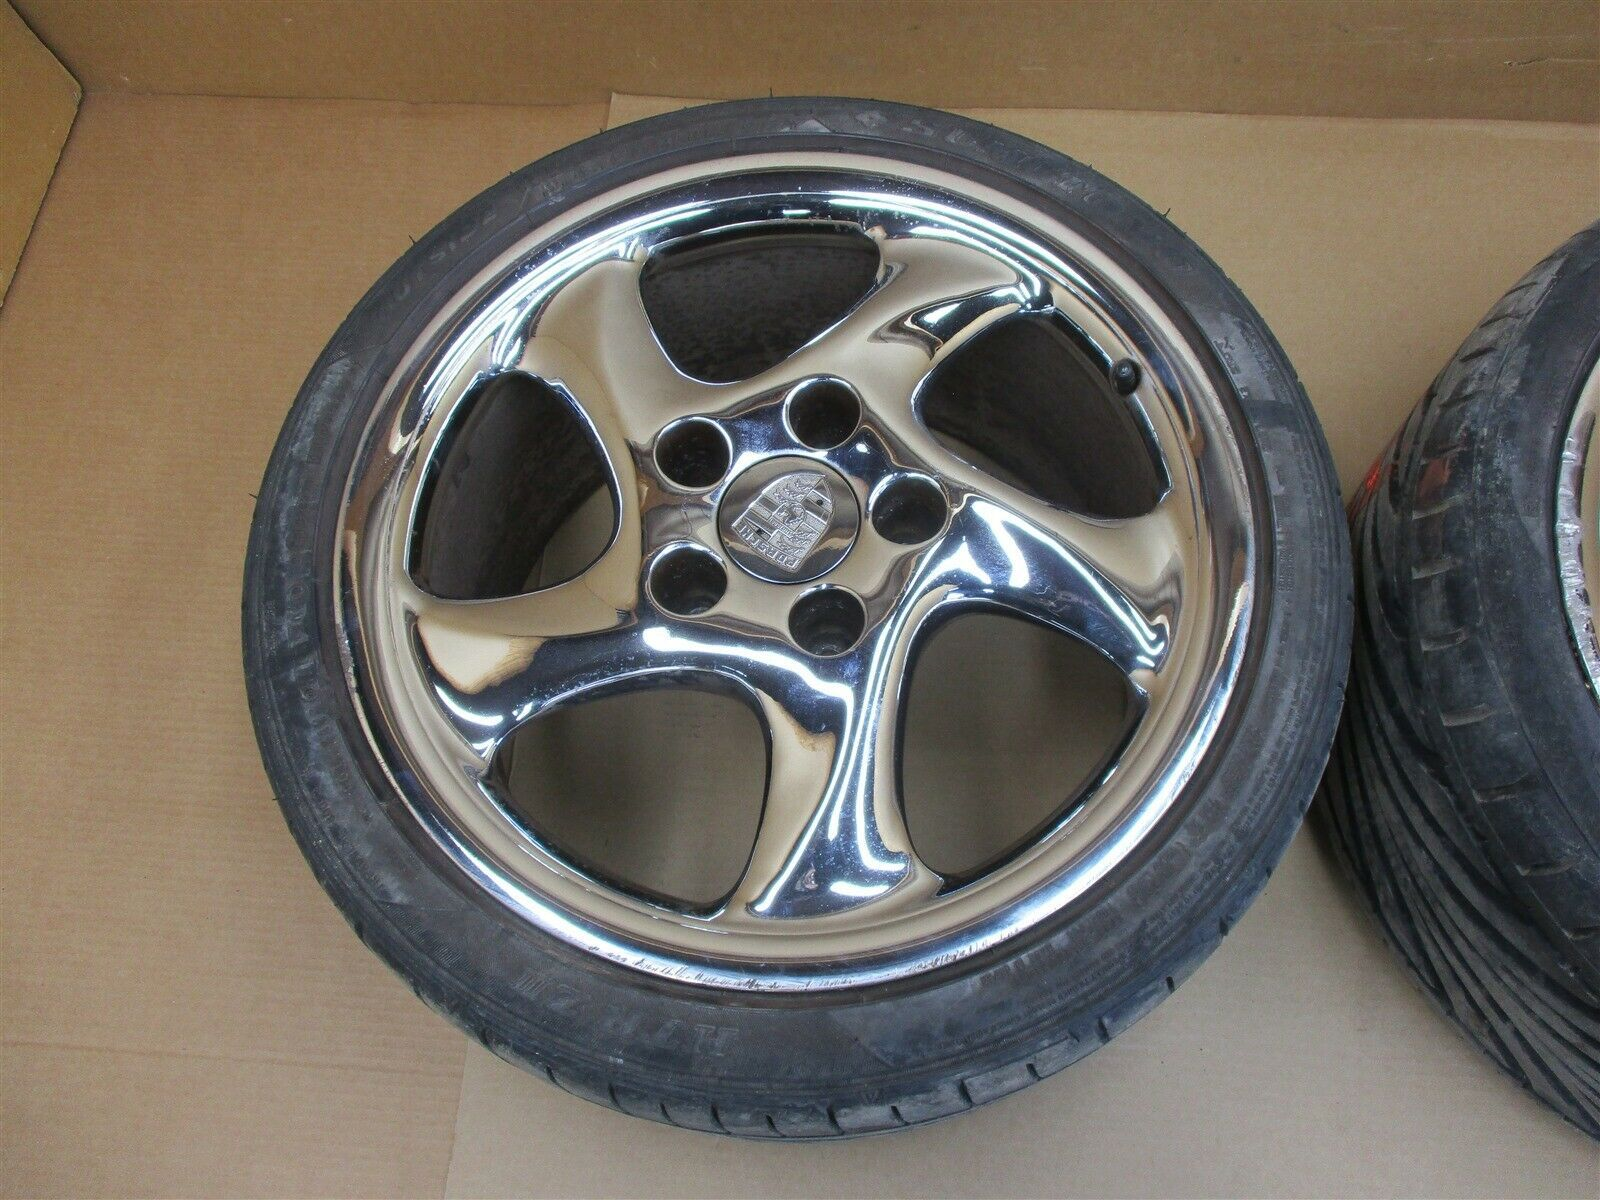 99 Carrera 911 Porsche 996 Cabrio REAR RIMS WHEEL 10Jx18ET53 99335214004 101,290